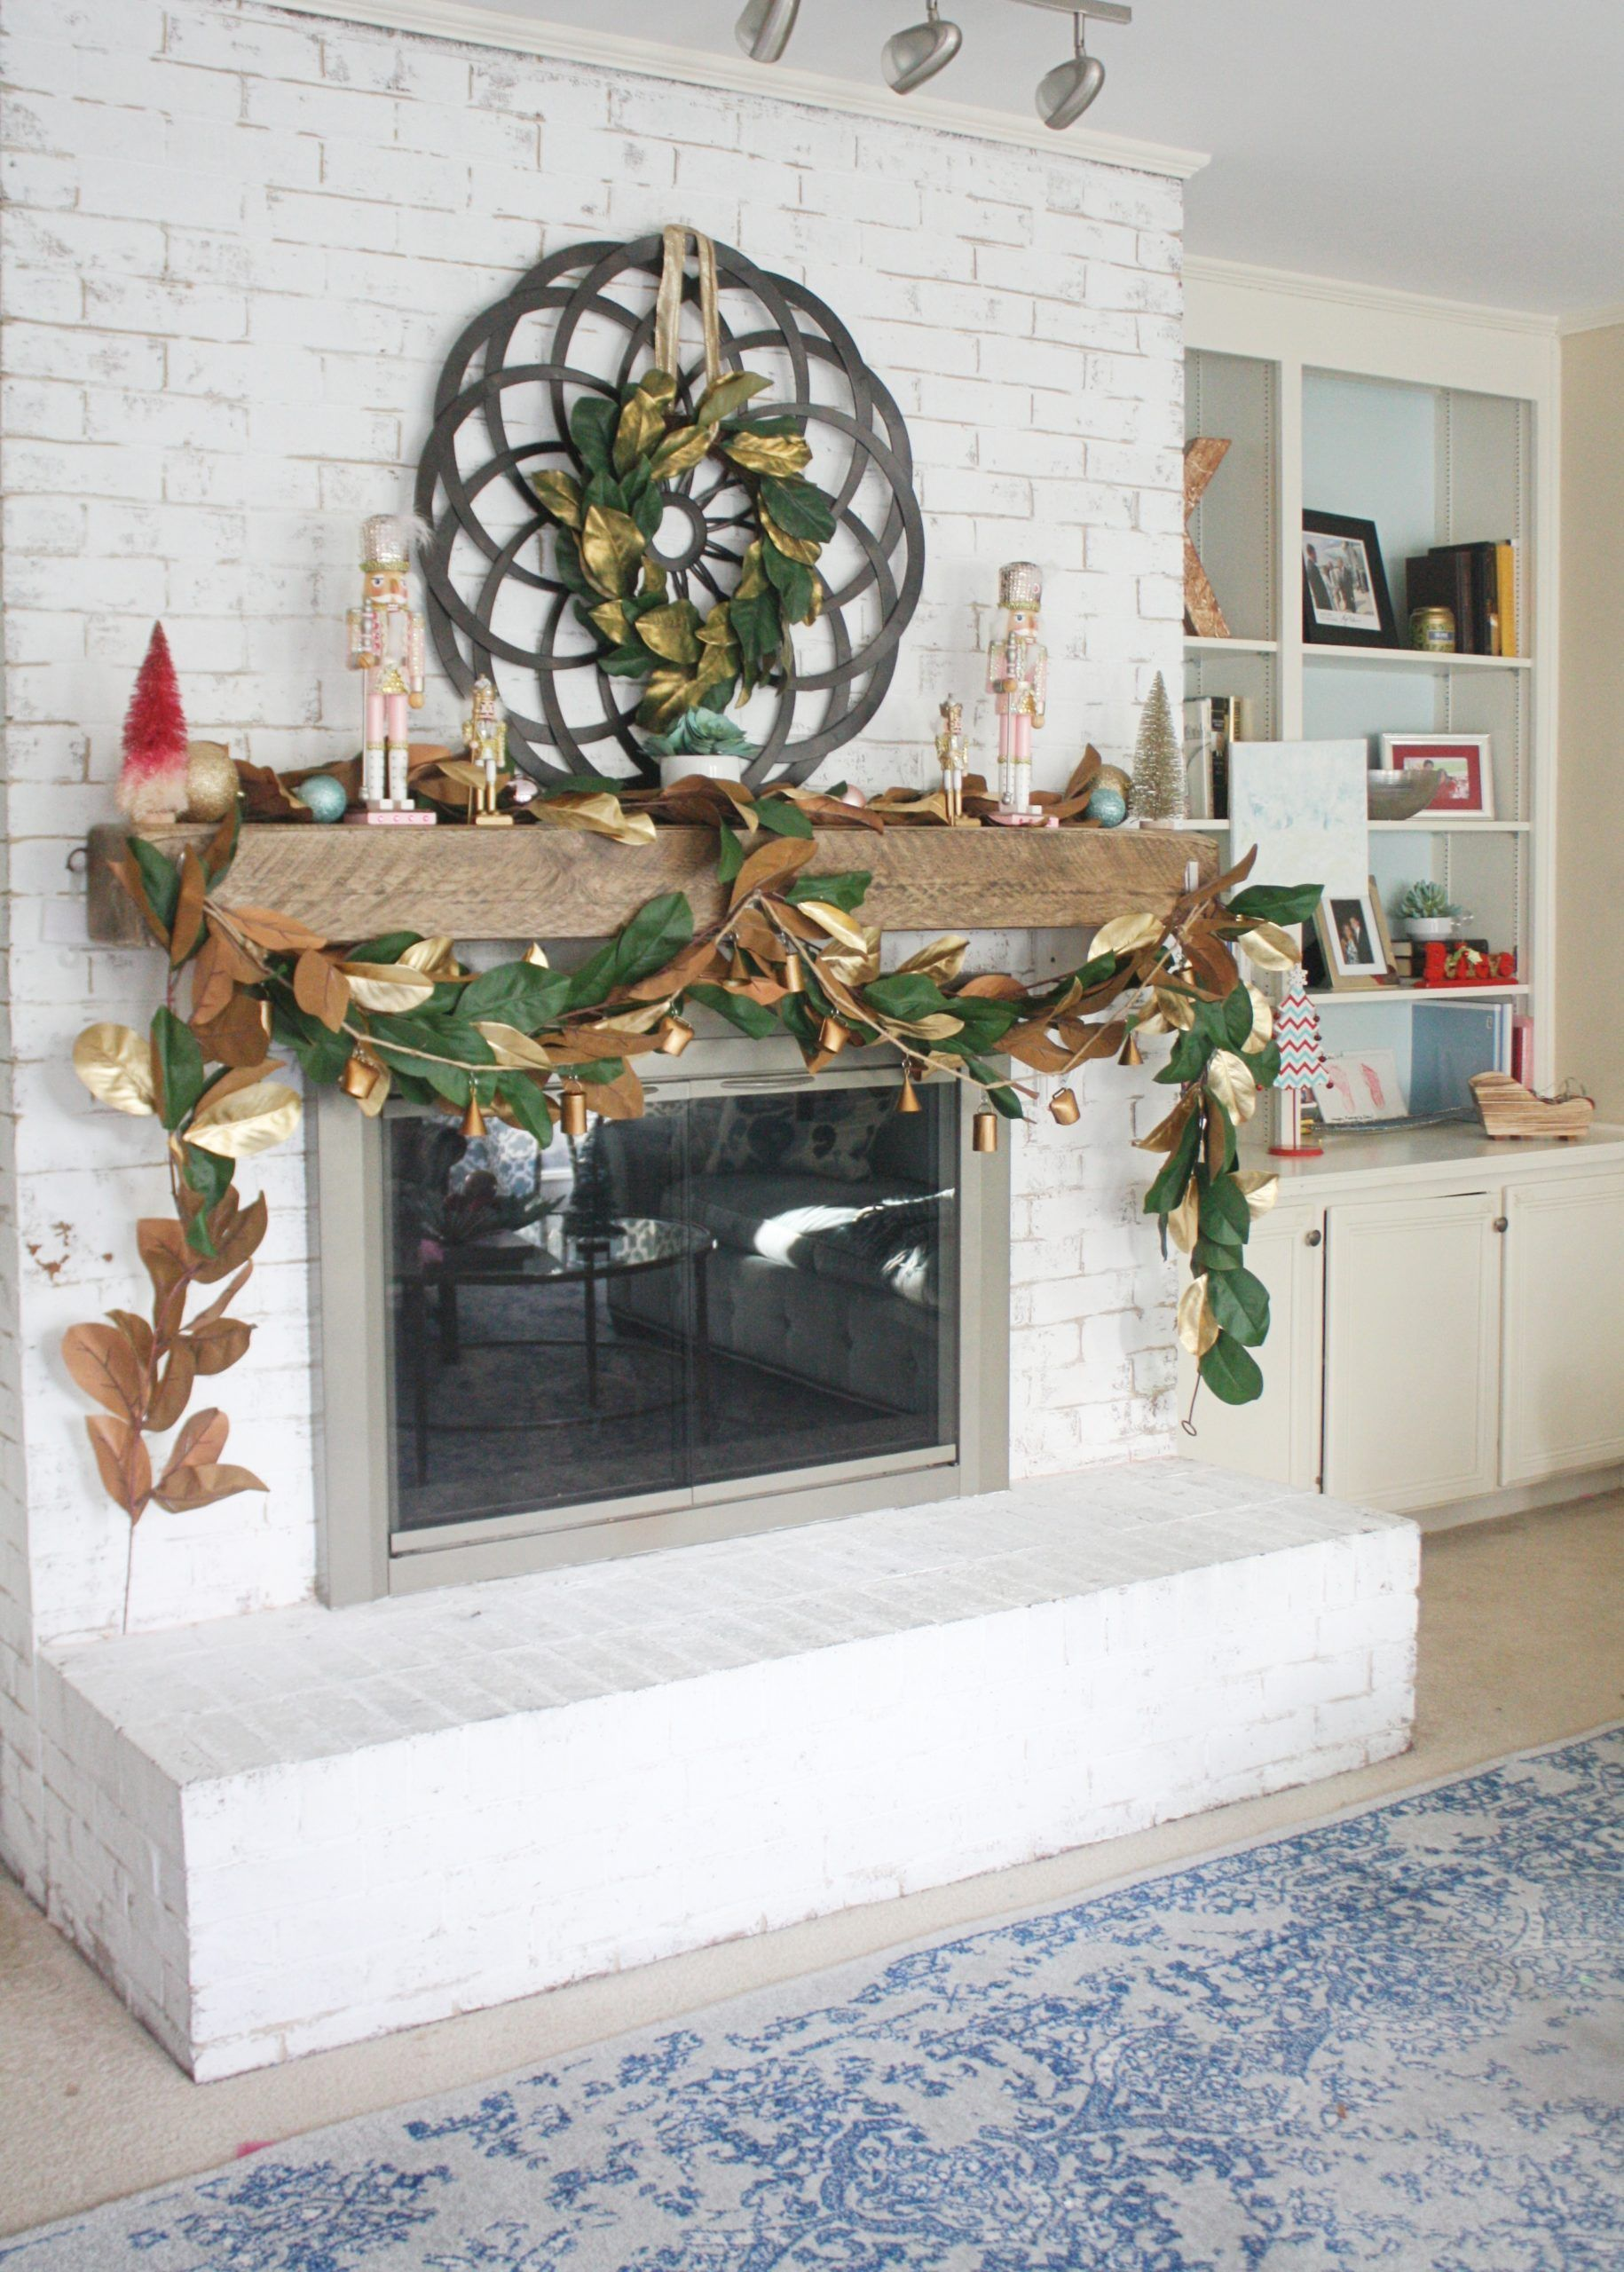 Minimal Christmas Decor Tips #magnoliachristmasdecor Minimal Christmas Decor Tips without compromising style! Get more ideas on www.sarahsofiaproductions.com #christmas #christmasdecor #christmastree #christmasdecoration #holiday #holidaydecor #holidaydecorating #diy #diyhomedecor #magnolia #gold #magnoliachristmasdecor